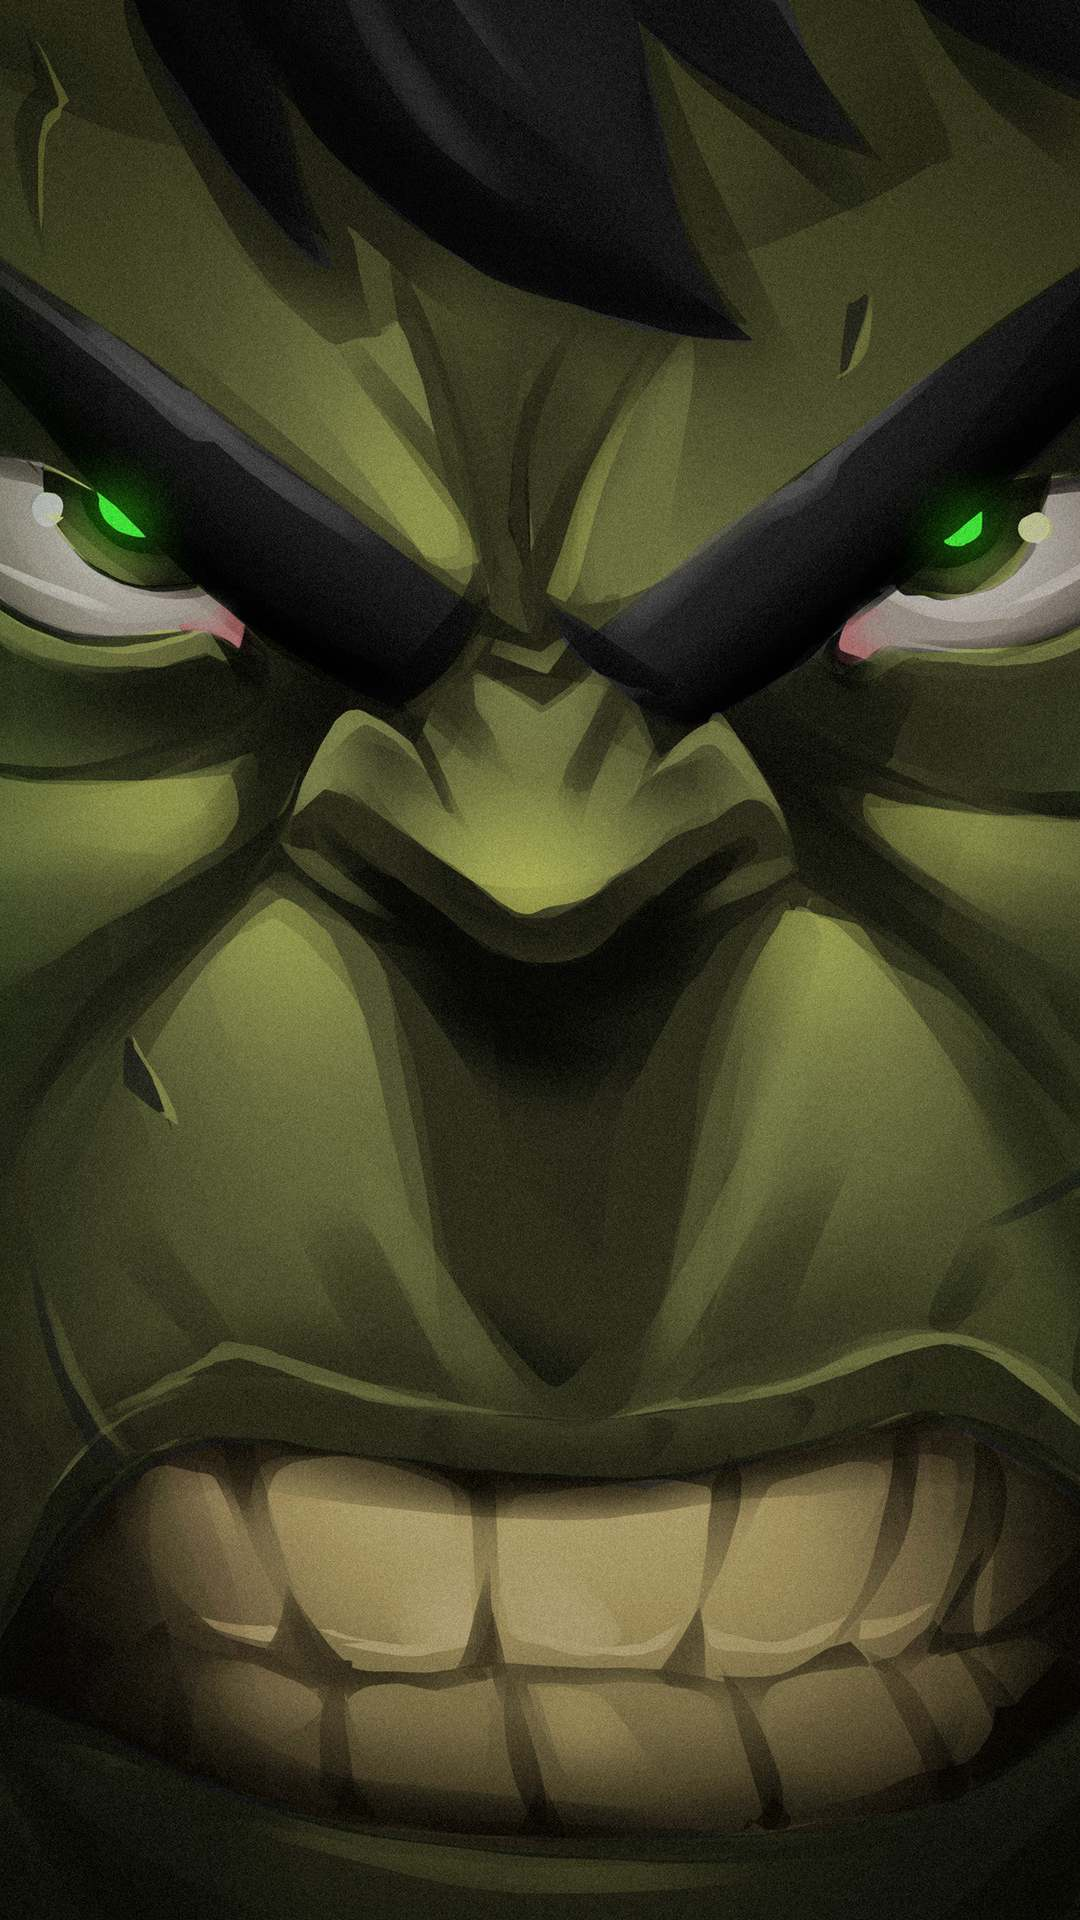 Hulk Face iPhone Wallpaper